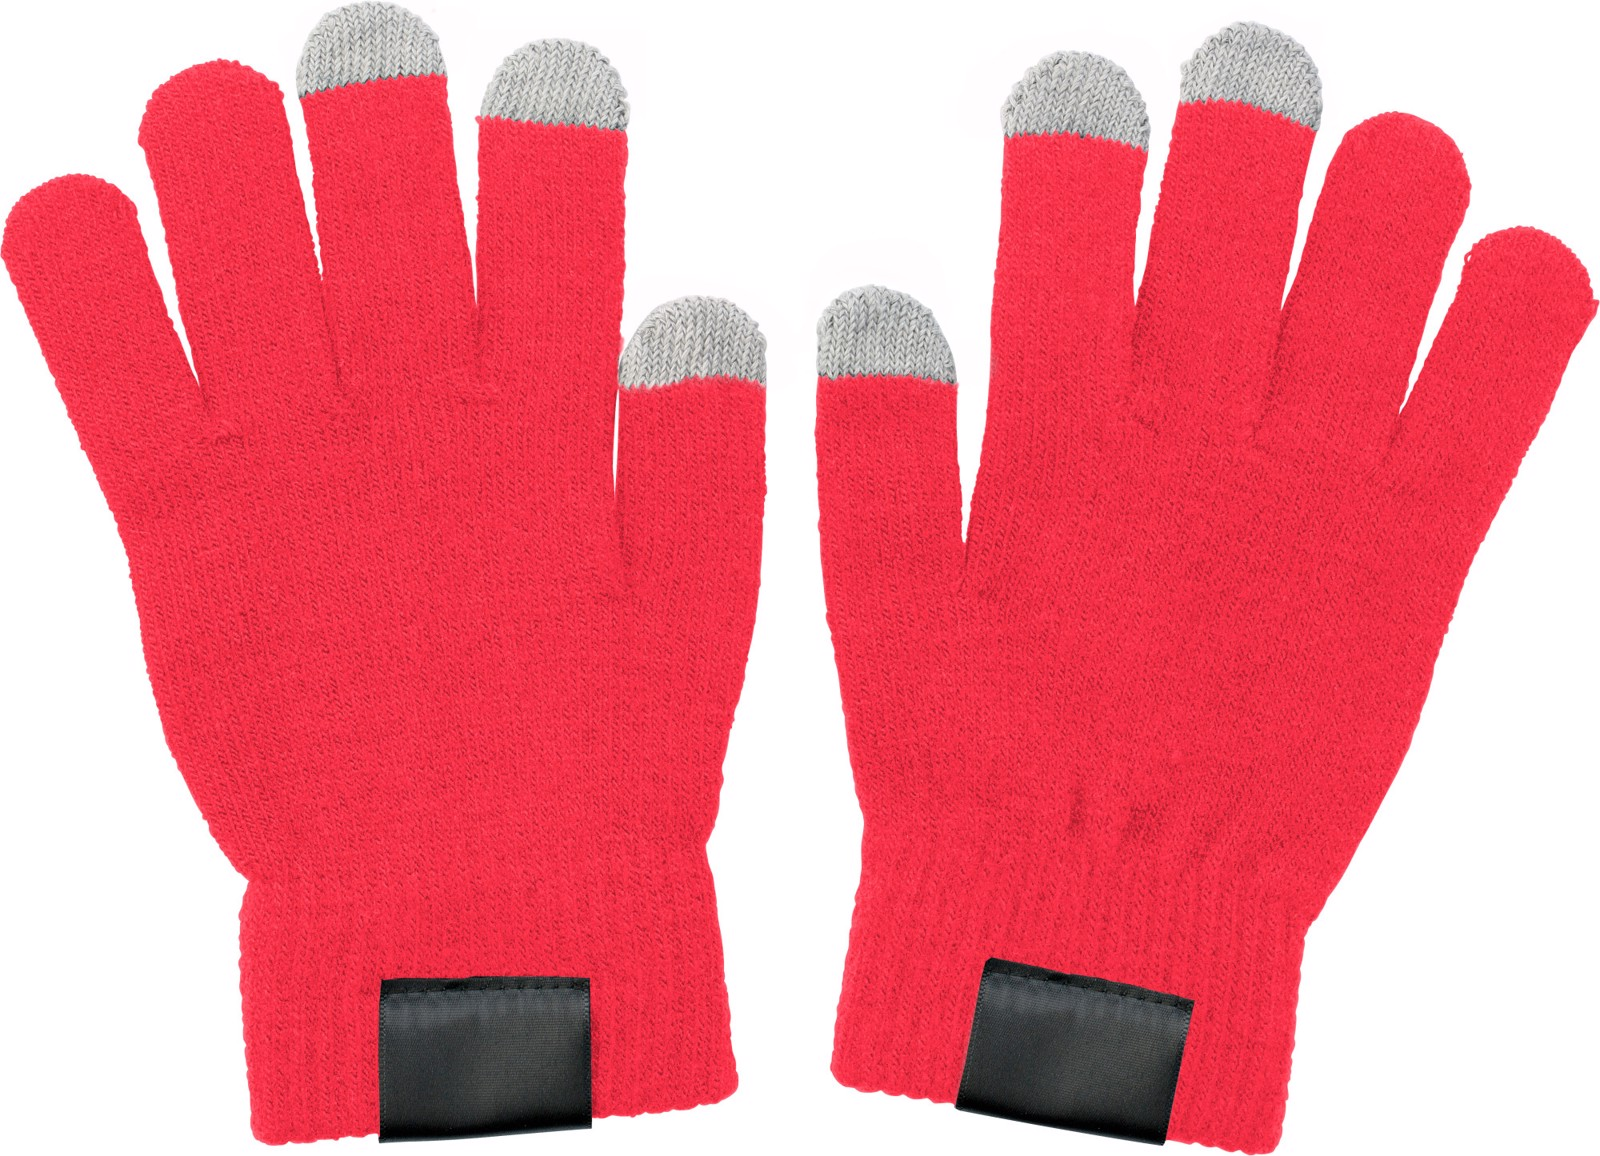 Polyester gloves - Red